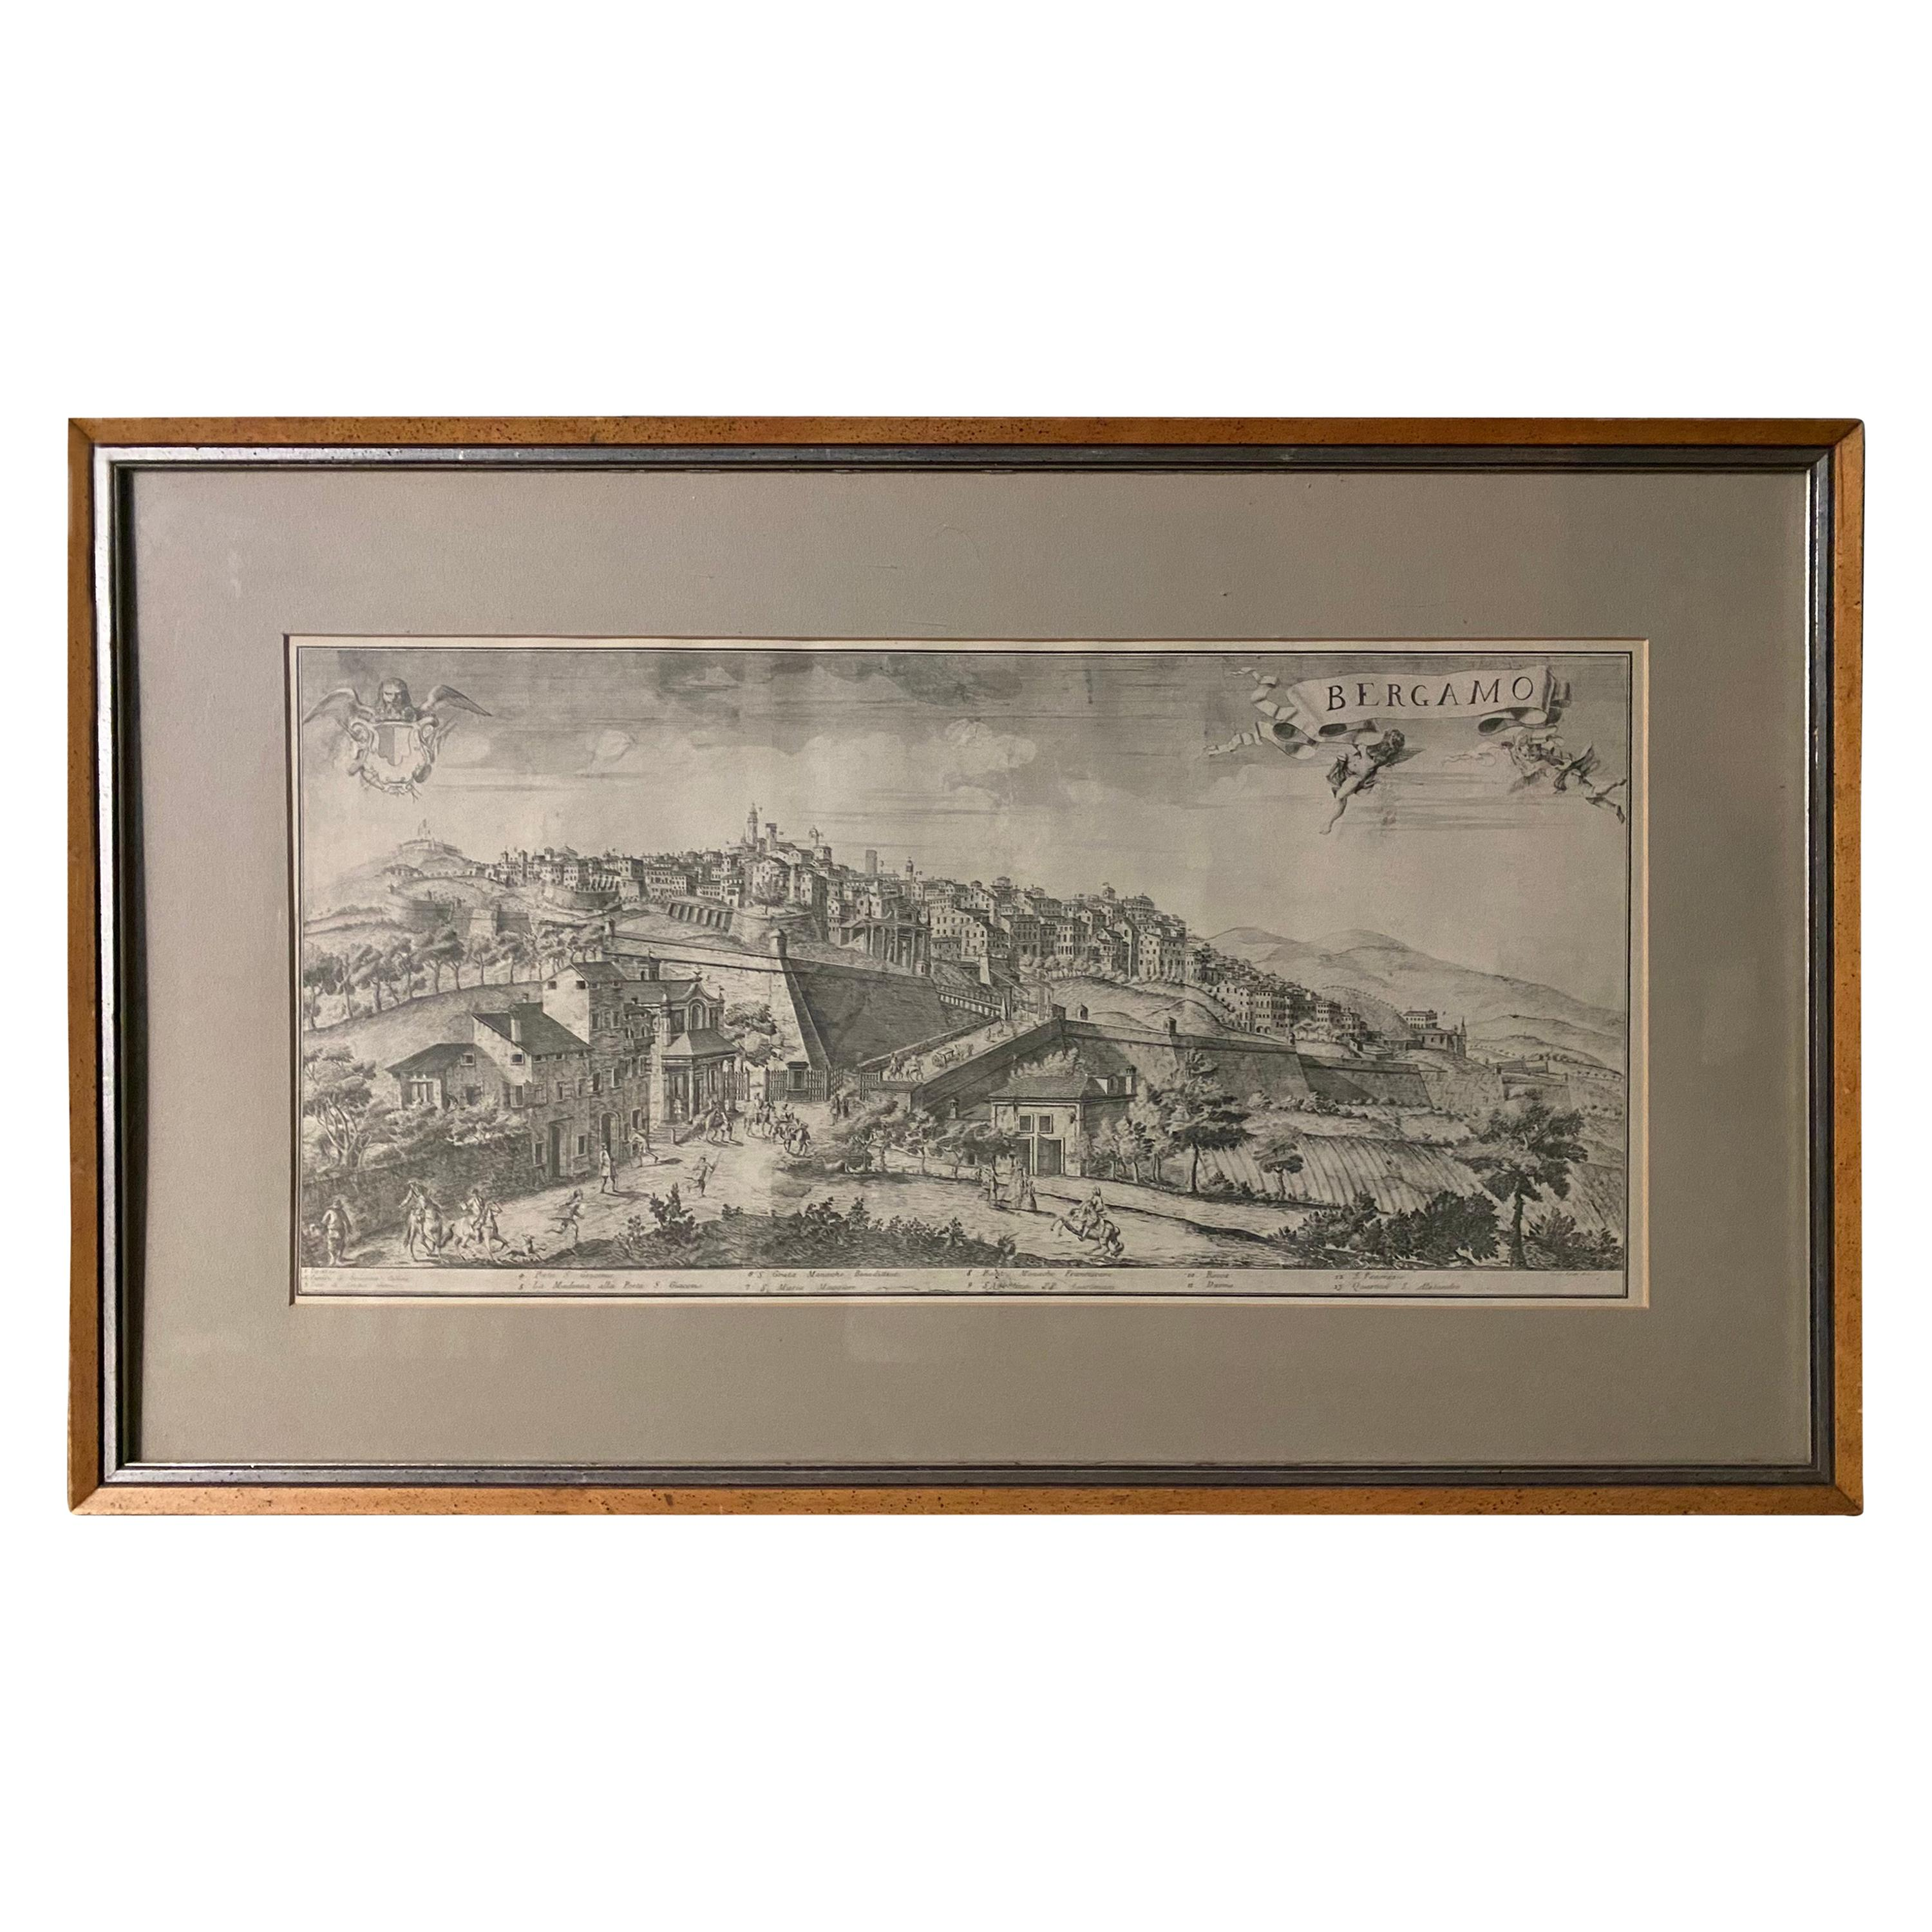 19th C Engraving of the City of Bergamo, Italy